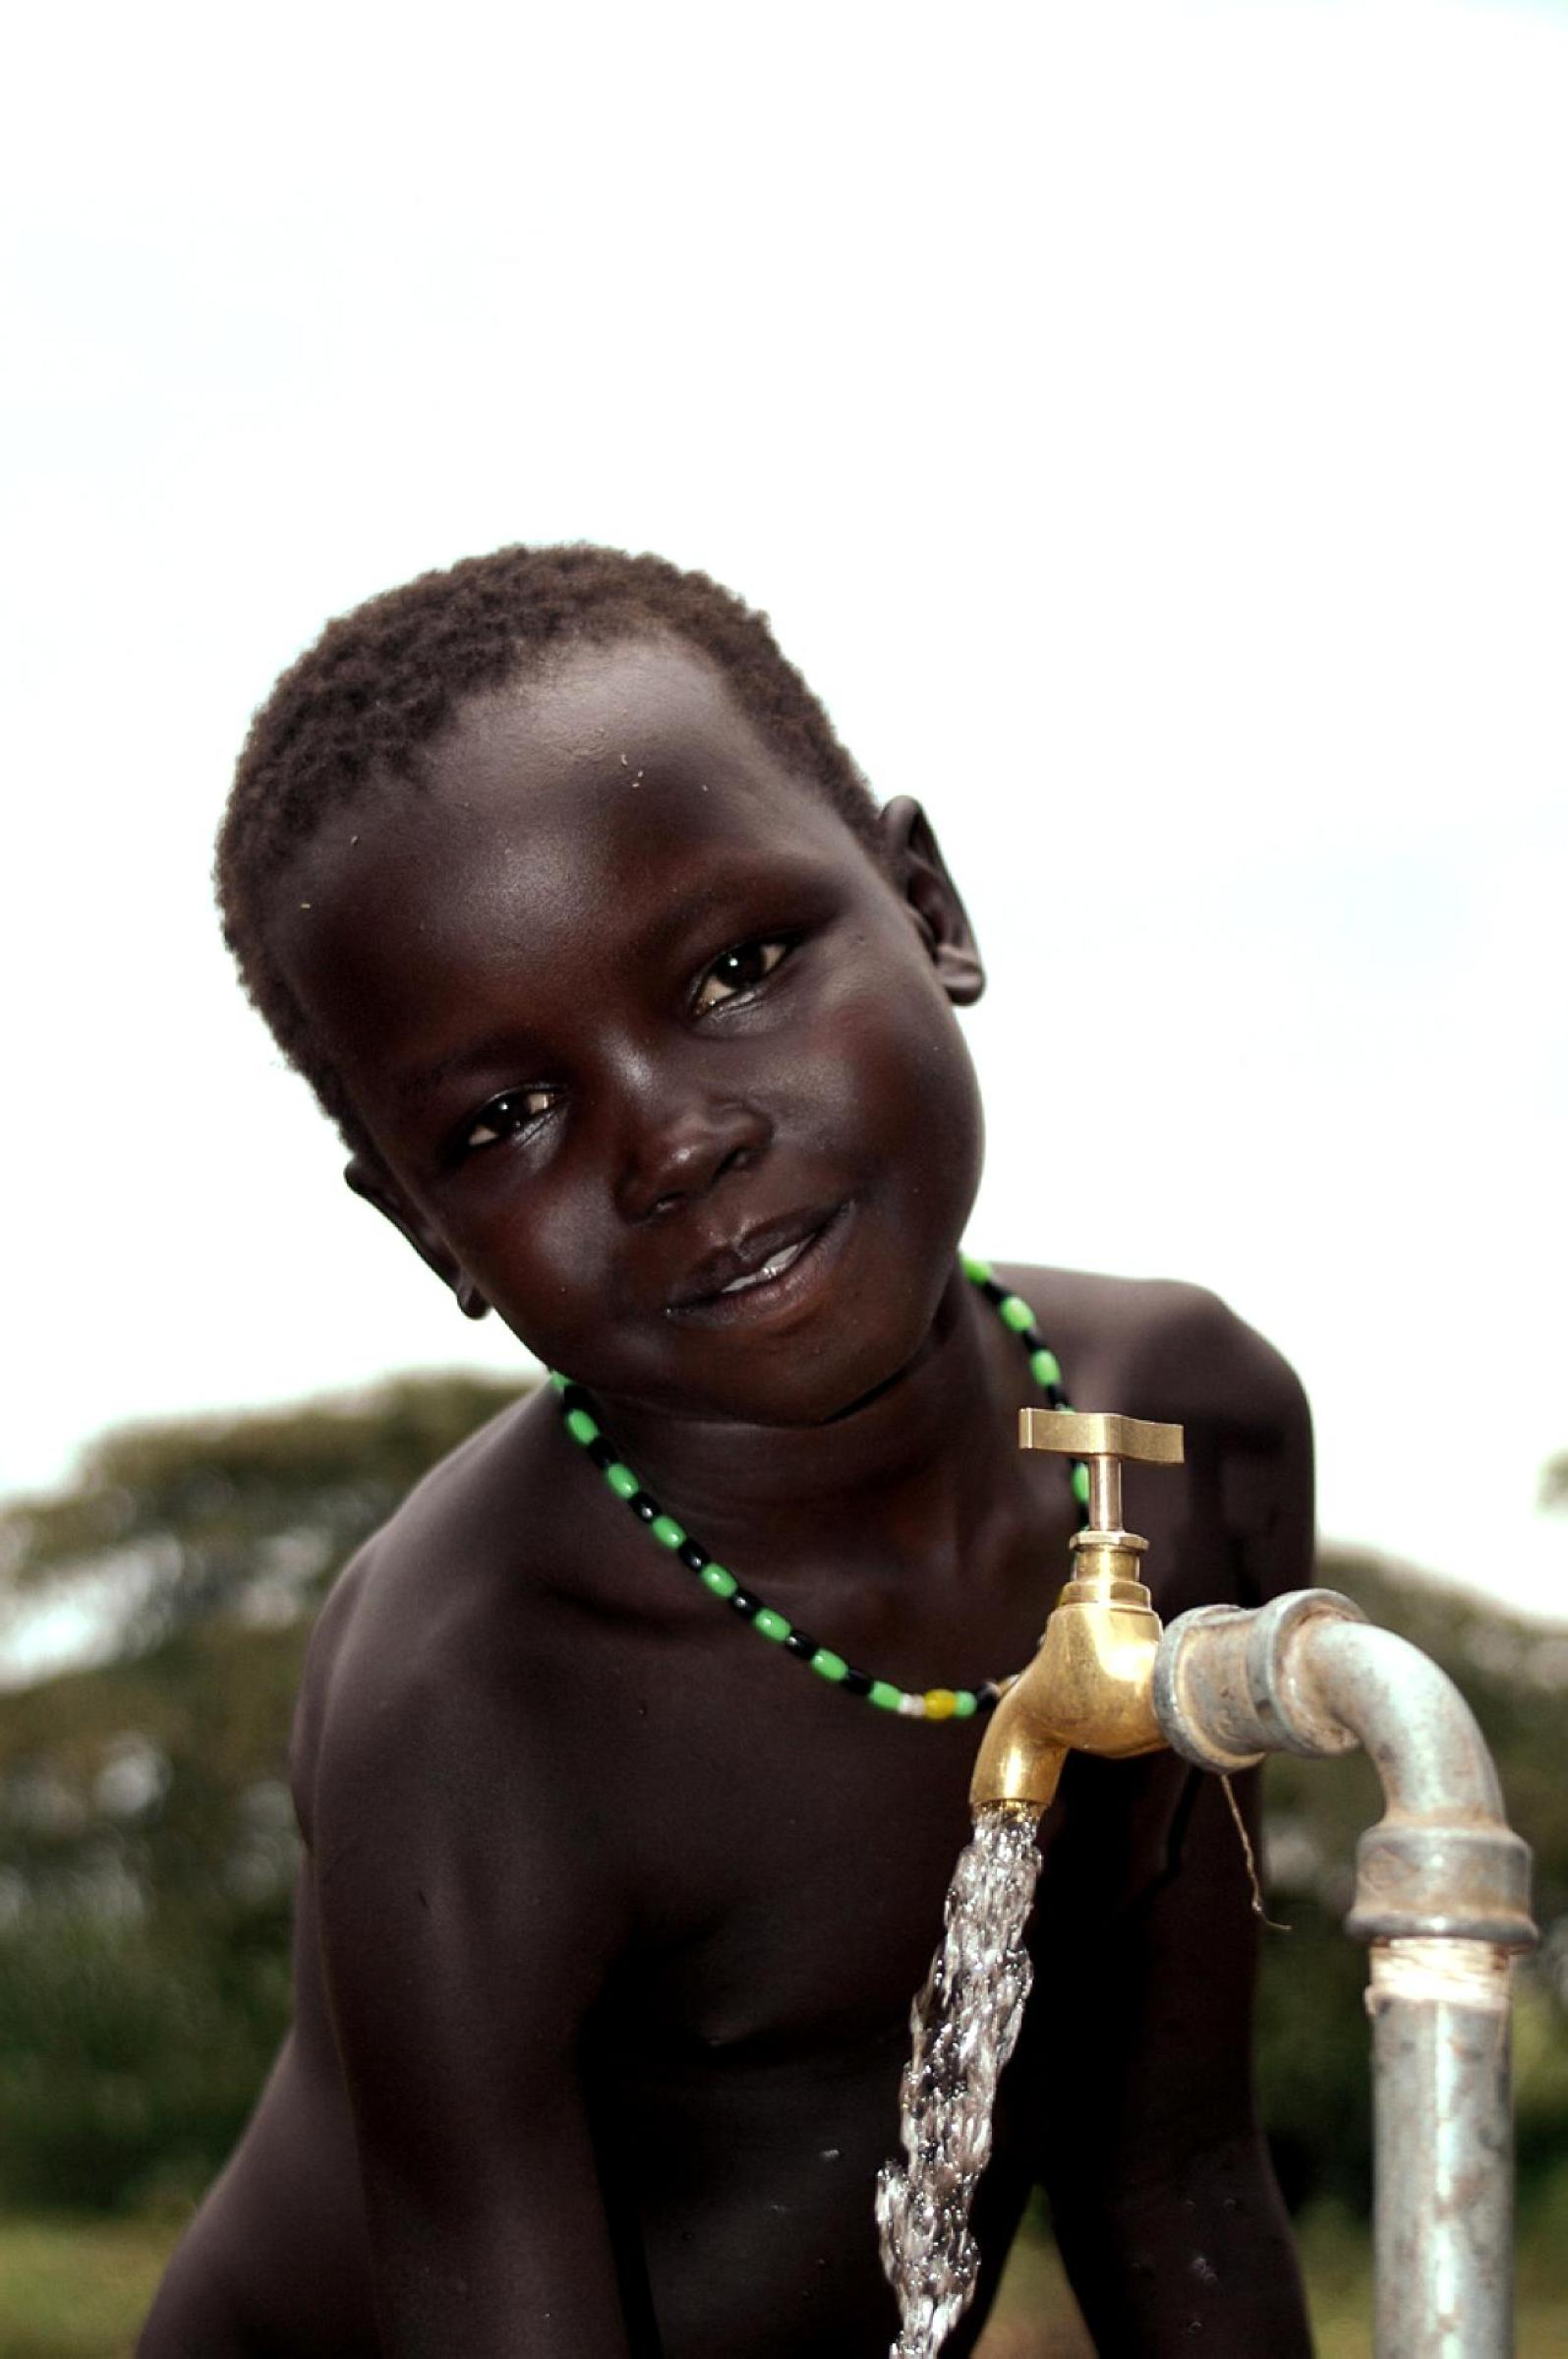 Free Picture Up Close Portrait Young African Boy